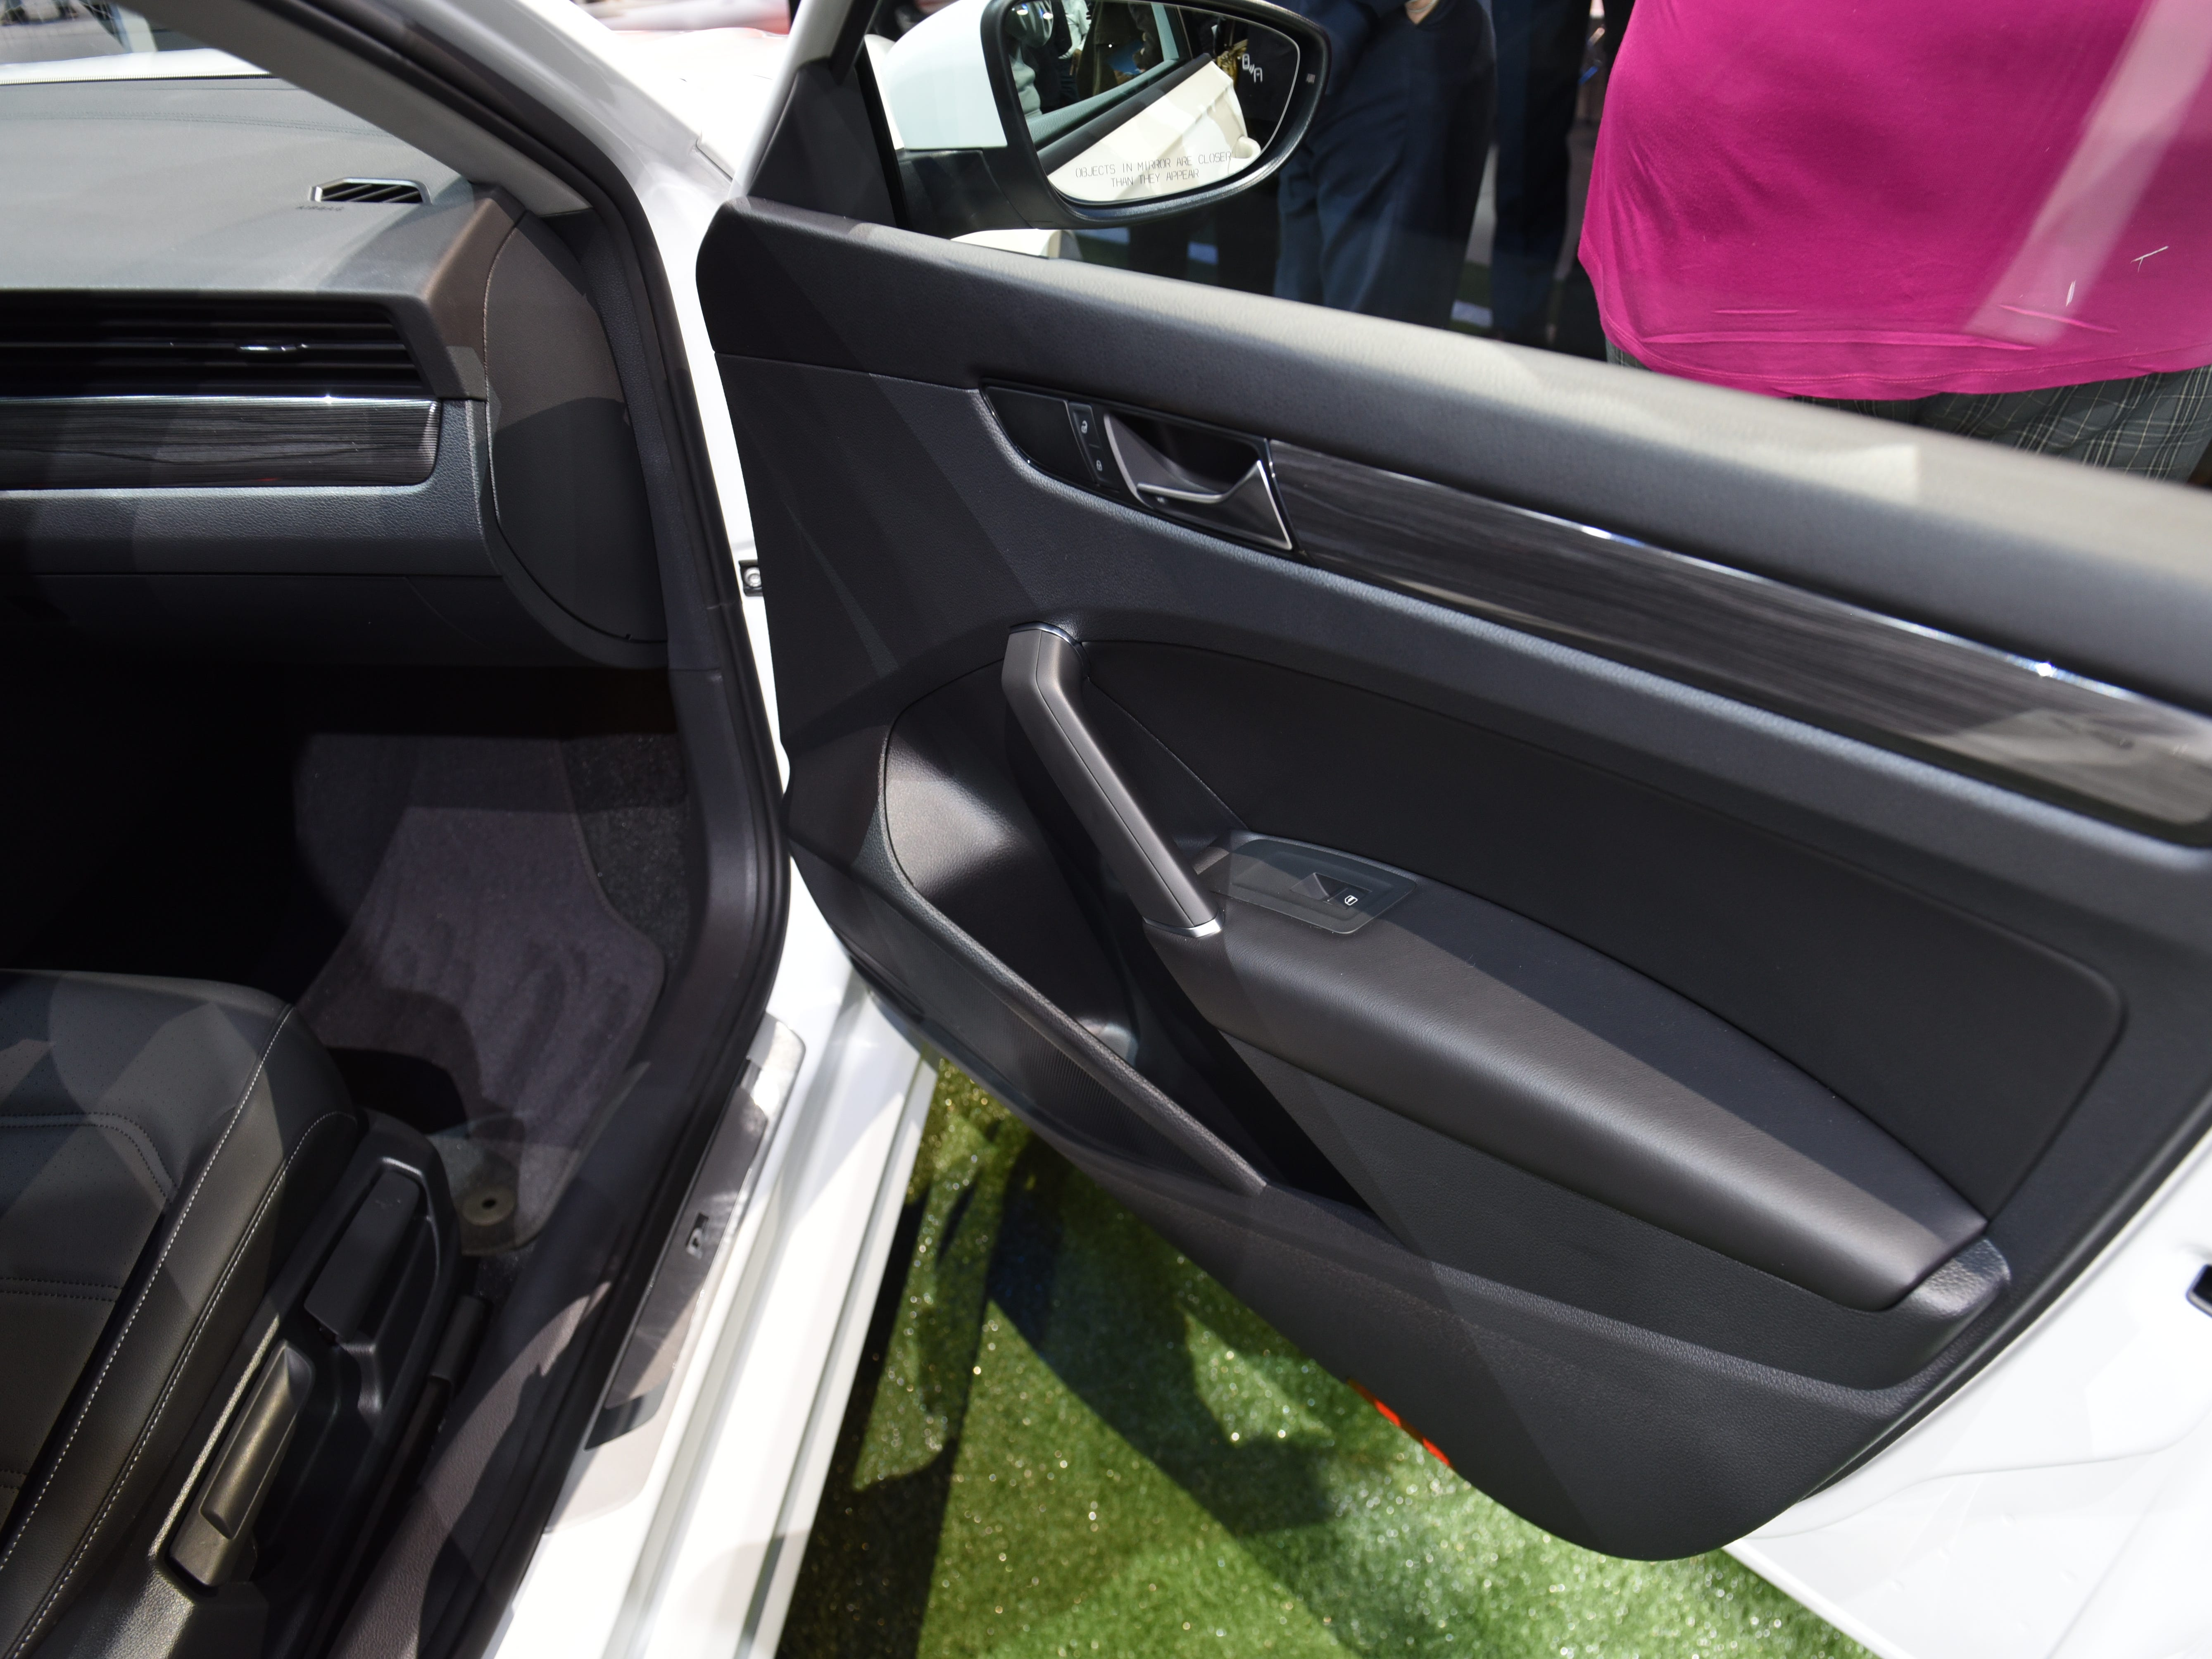 Volkswagen's V-Tex leatherette and Nappa leather seats are available on the 2020 Passat, in addition to the standard cloth seats with four color options.